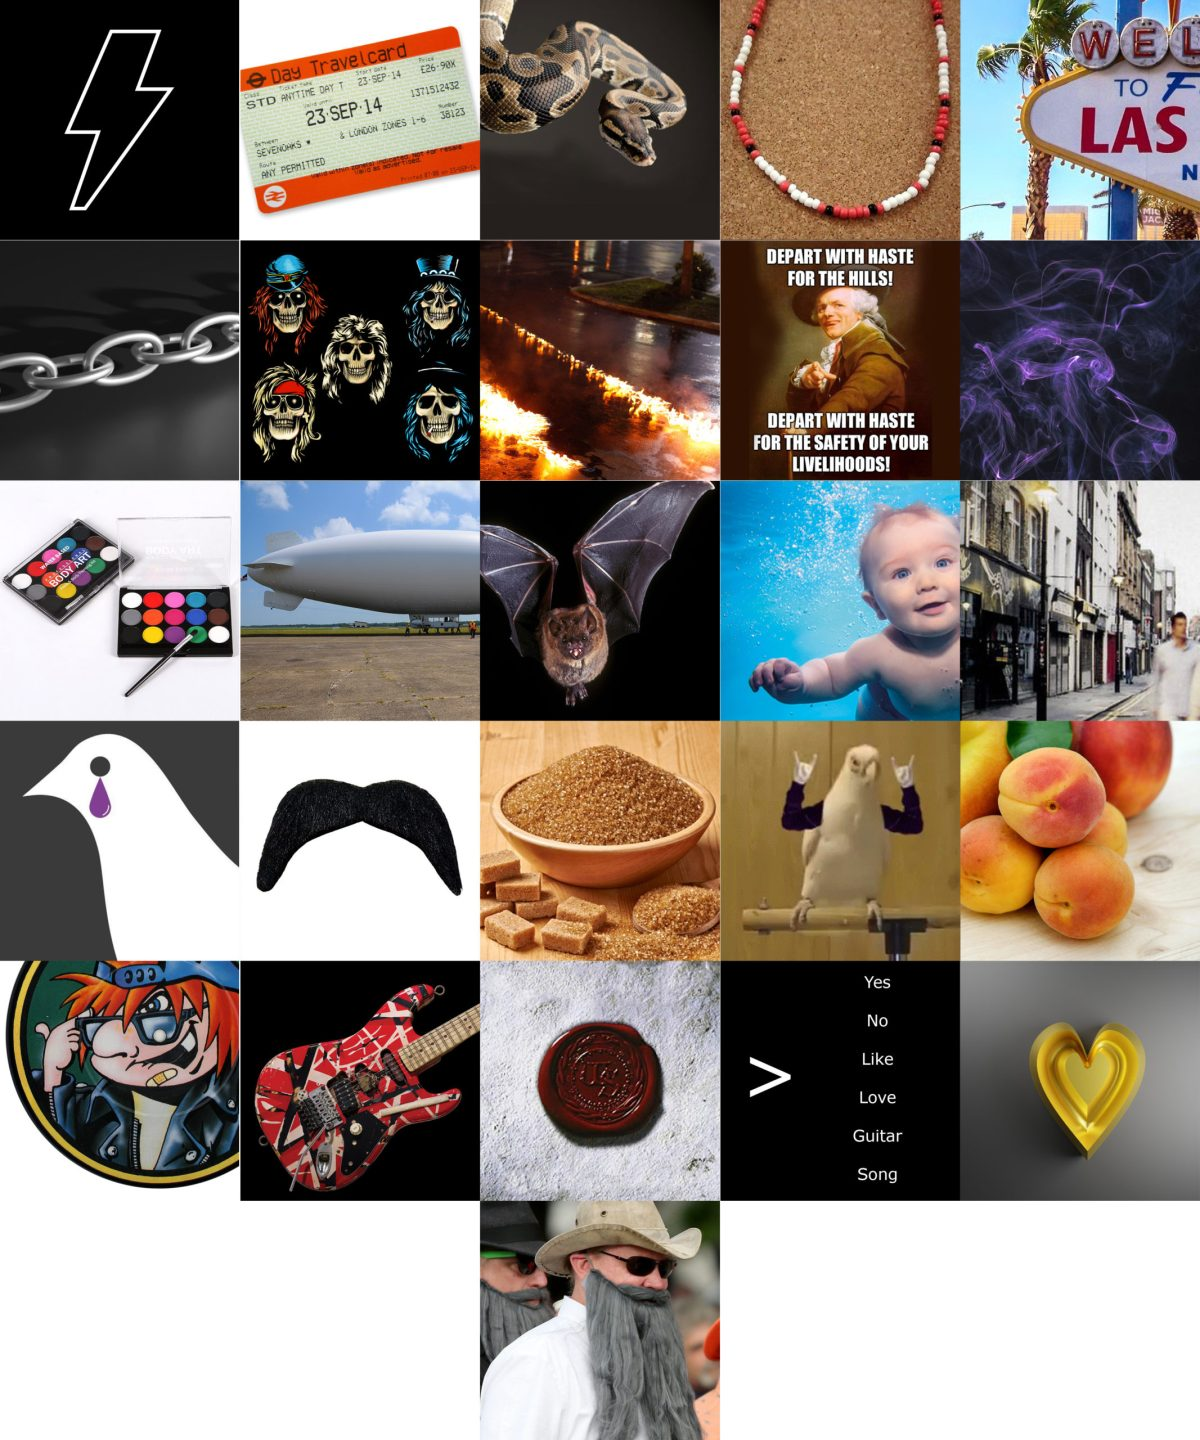 Images & Branding - full set of A-Z image clues